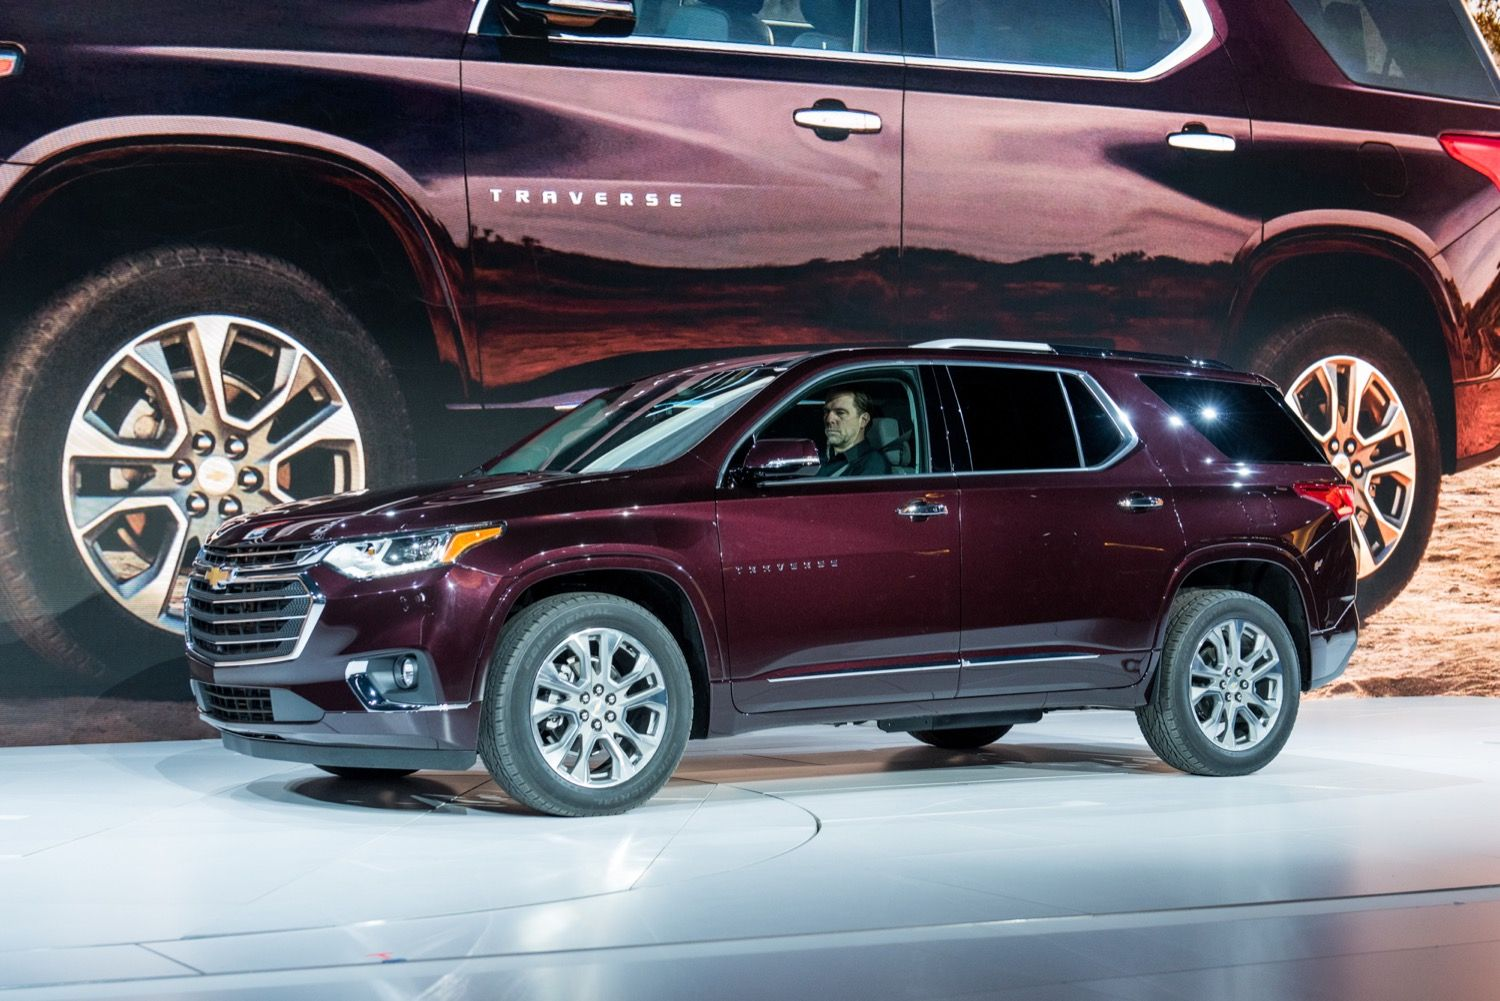 2021 Chevy Traverse Facelift And Release Date Chevrolet Traverse Chevrolet Chevy